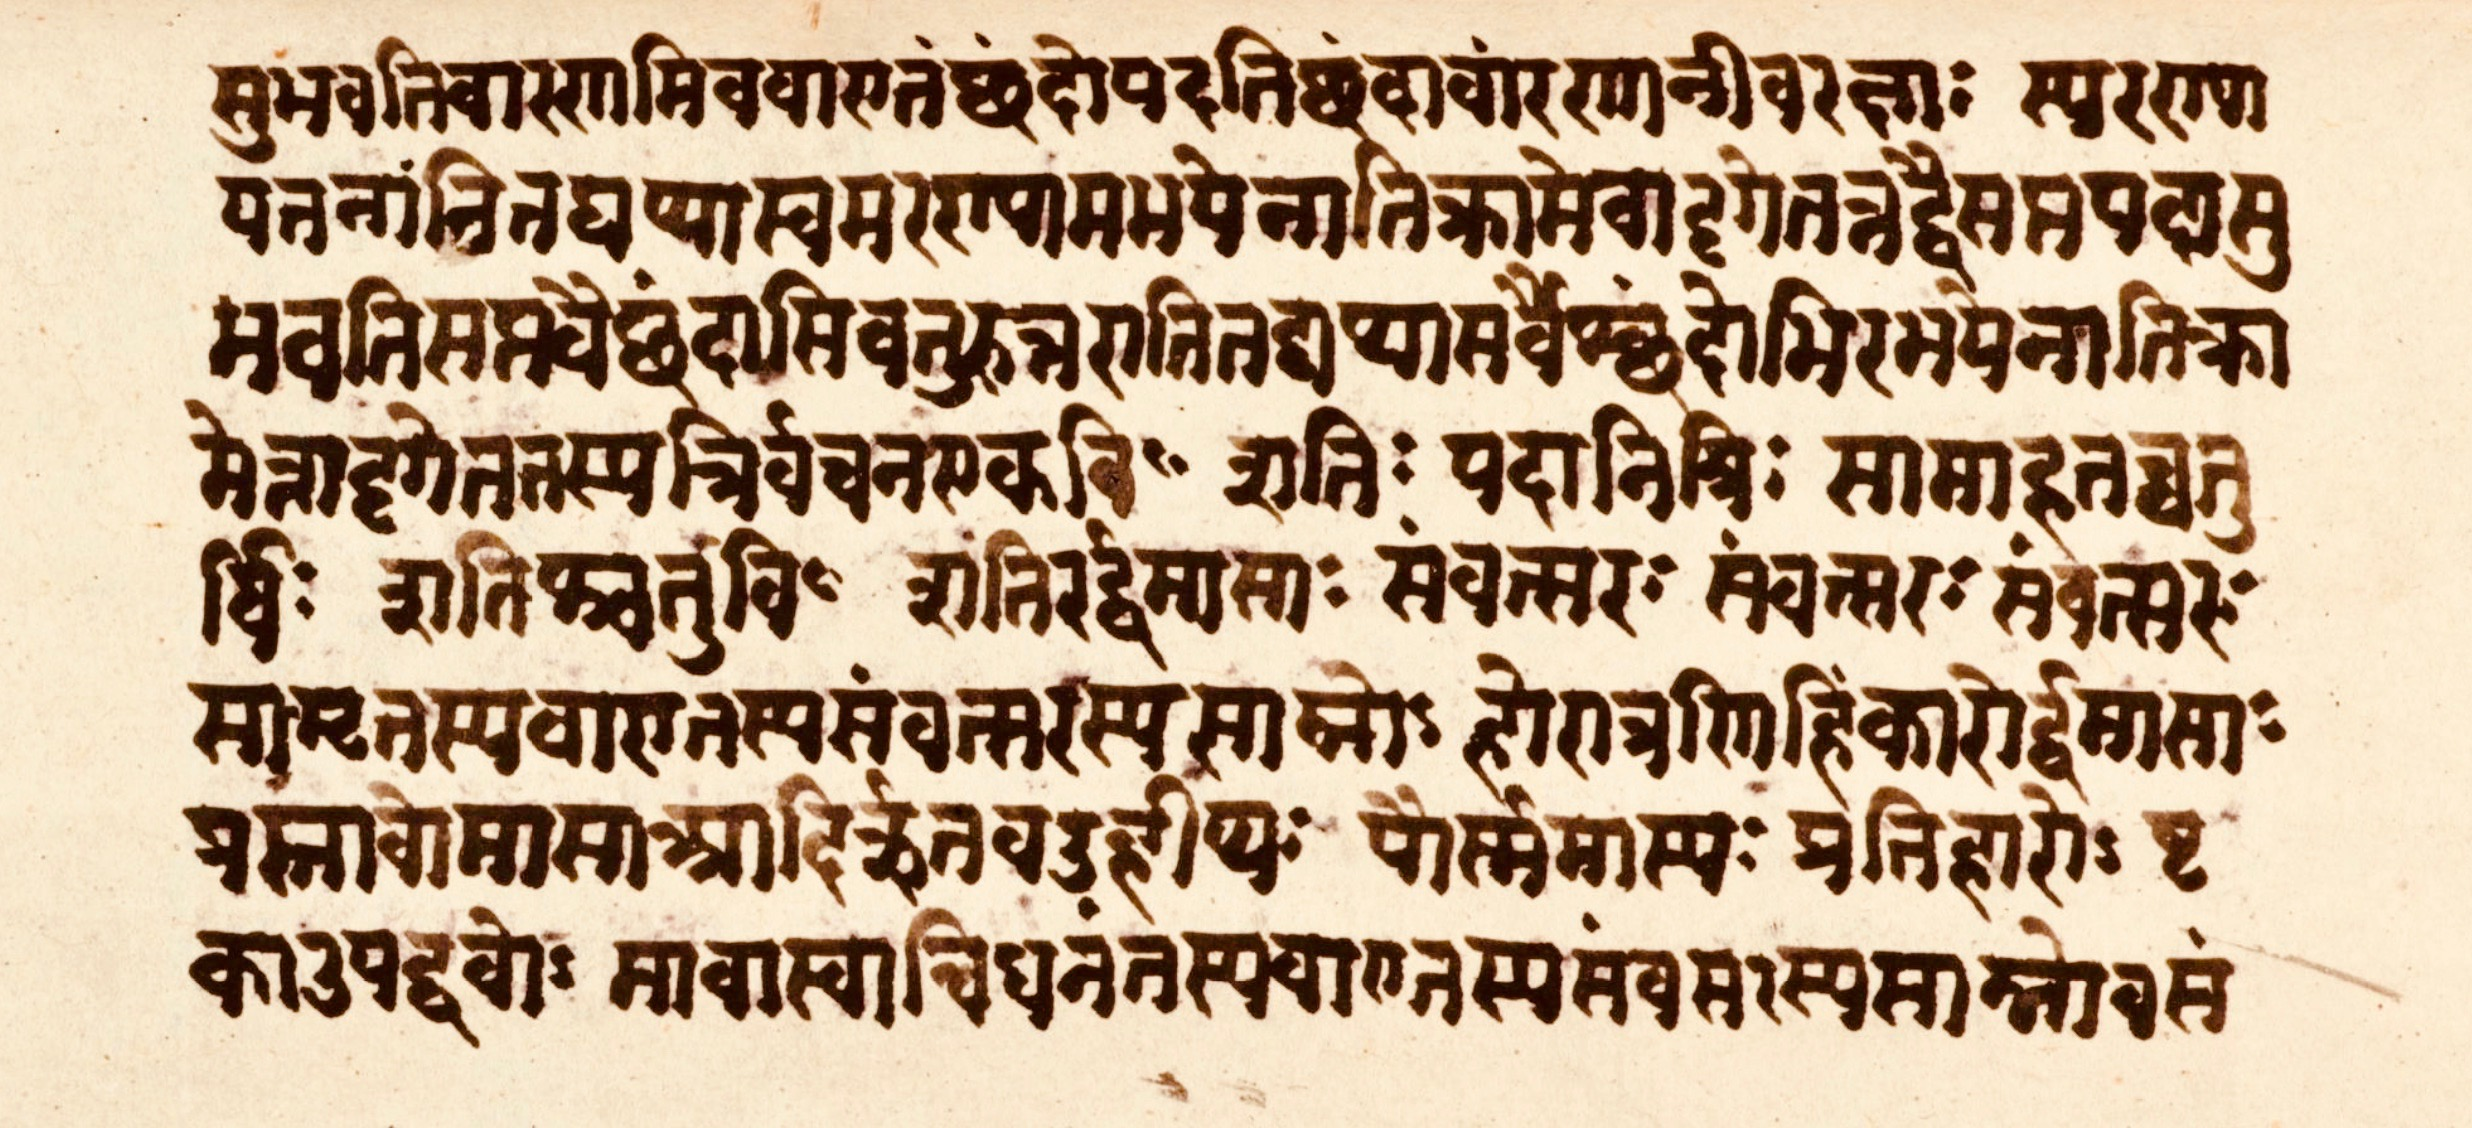 essay on basant panchami in sanskrit